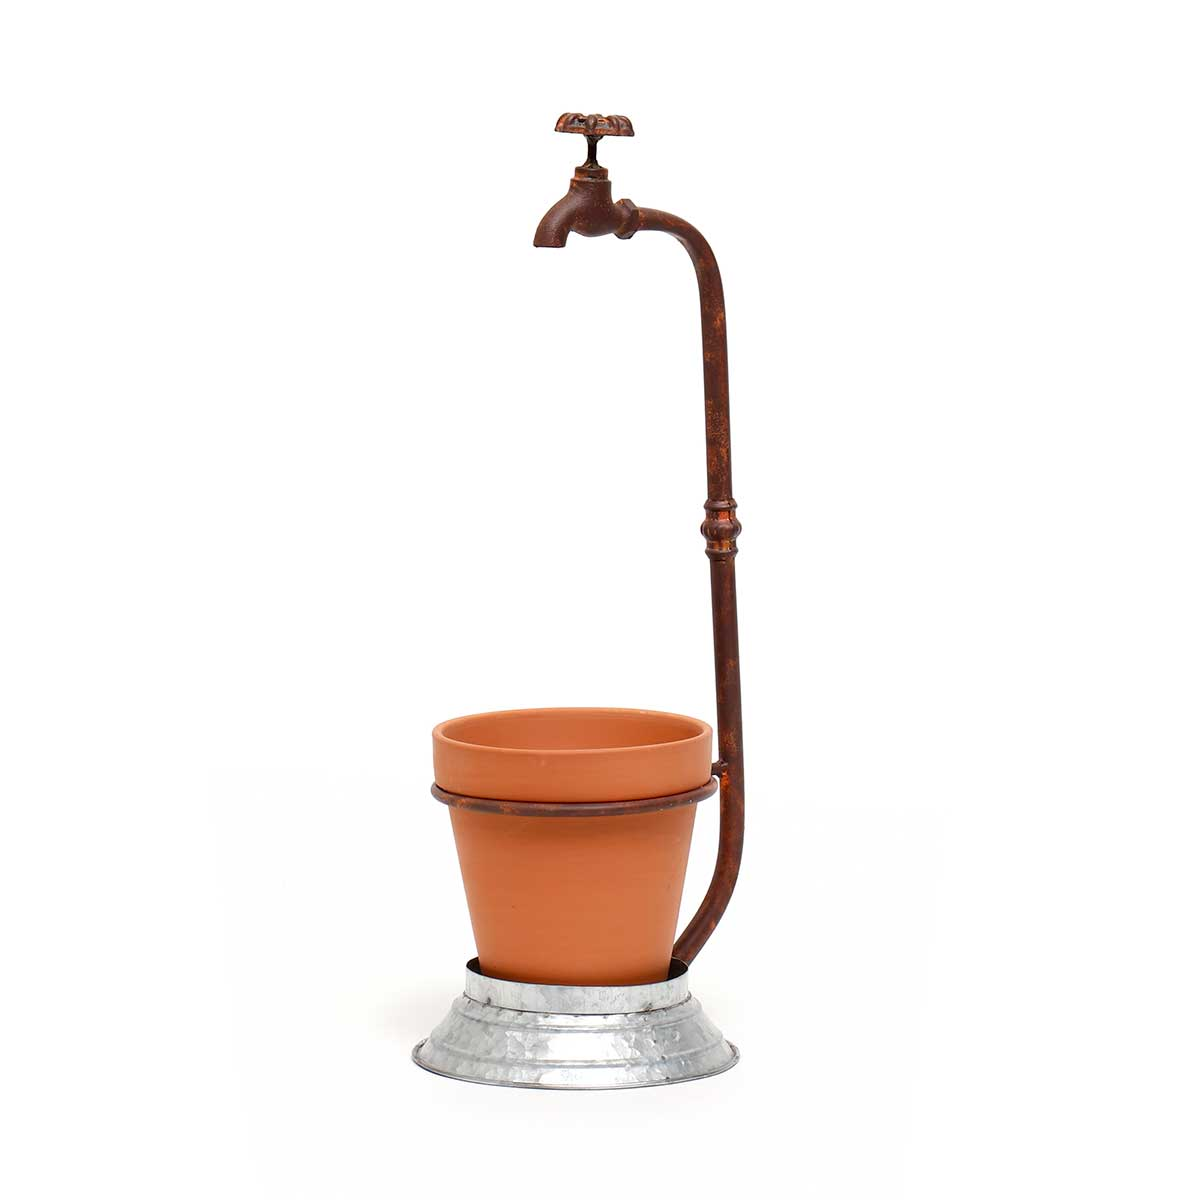 METAL GARDEN FAUCET PLANTER AND CLAY POT WITH DRAINAGE HOLE